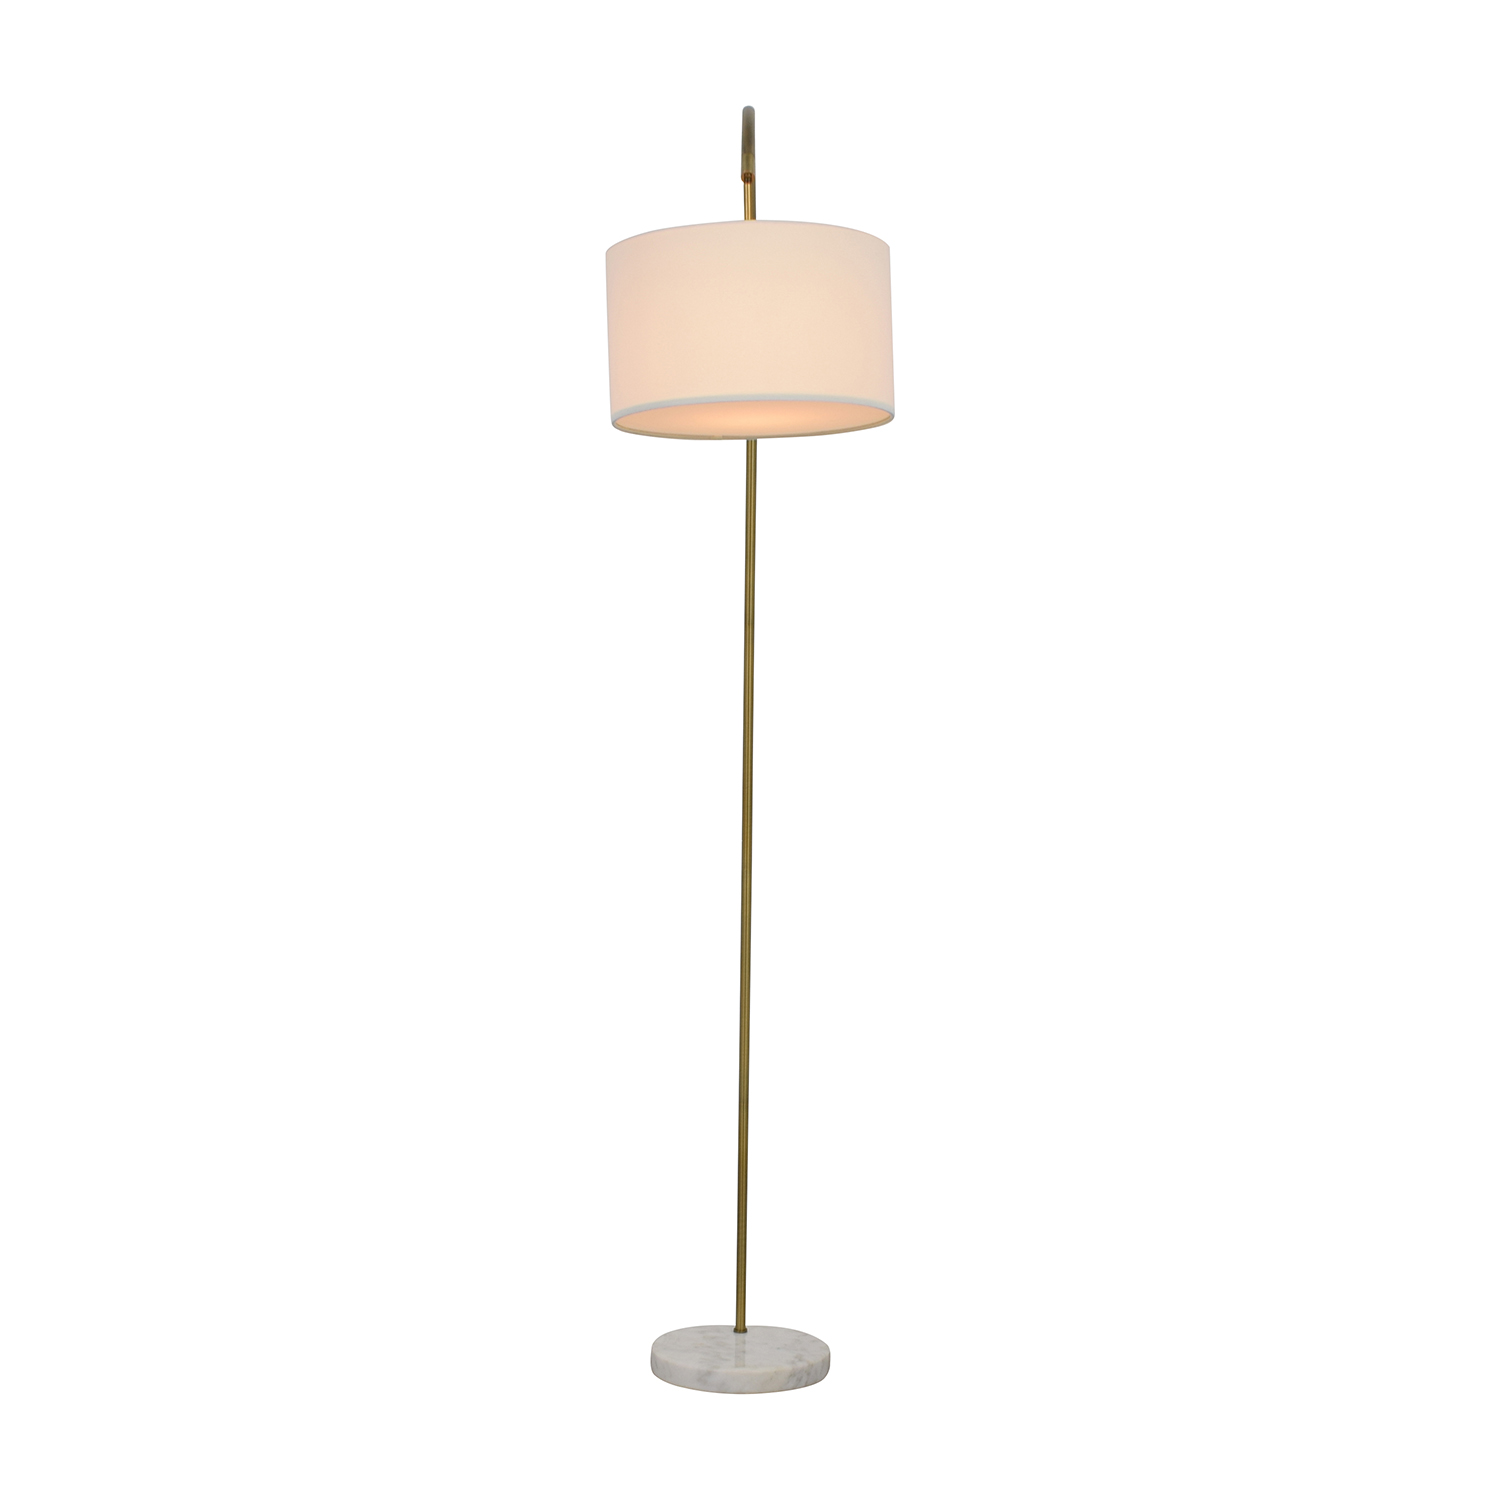 Modern style furniture second hand - Arched floor lamp ikea ...